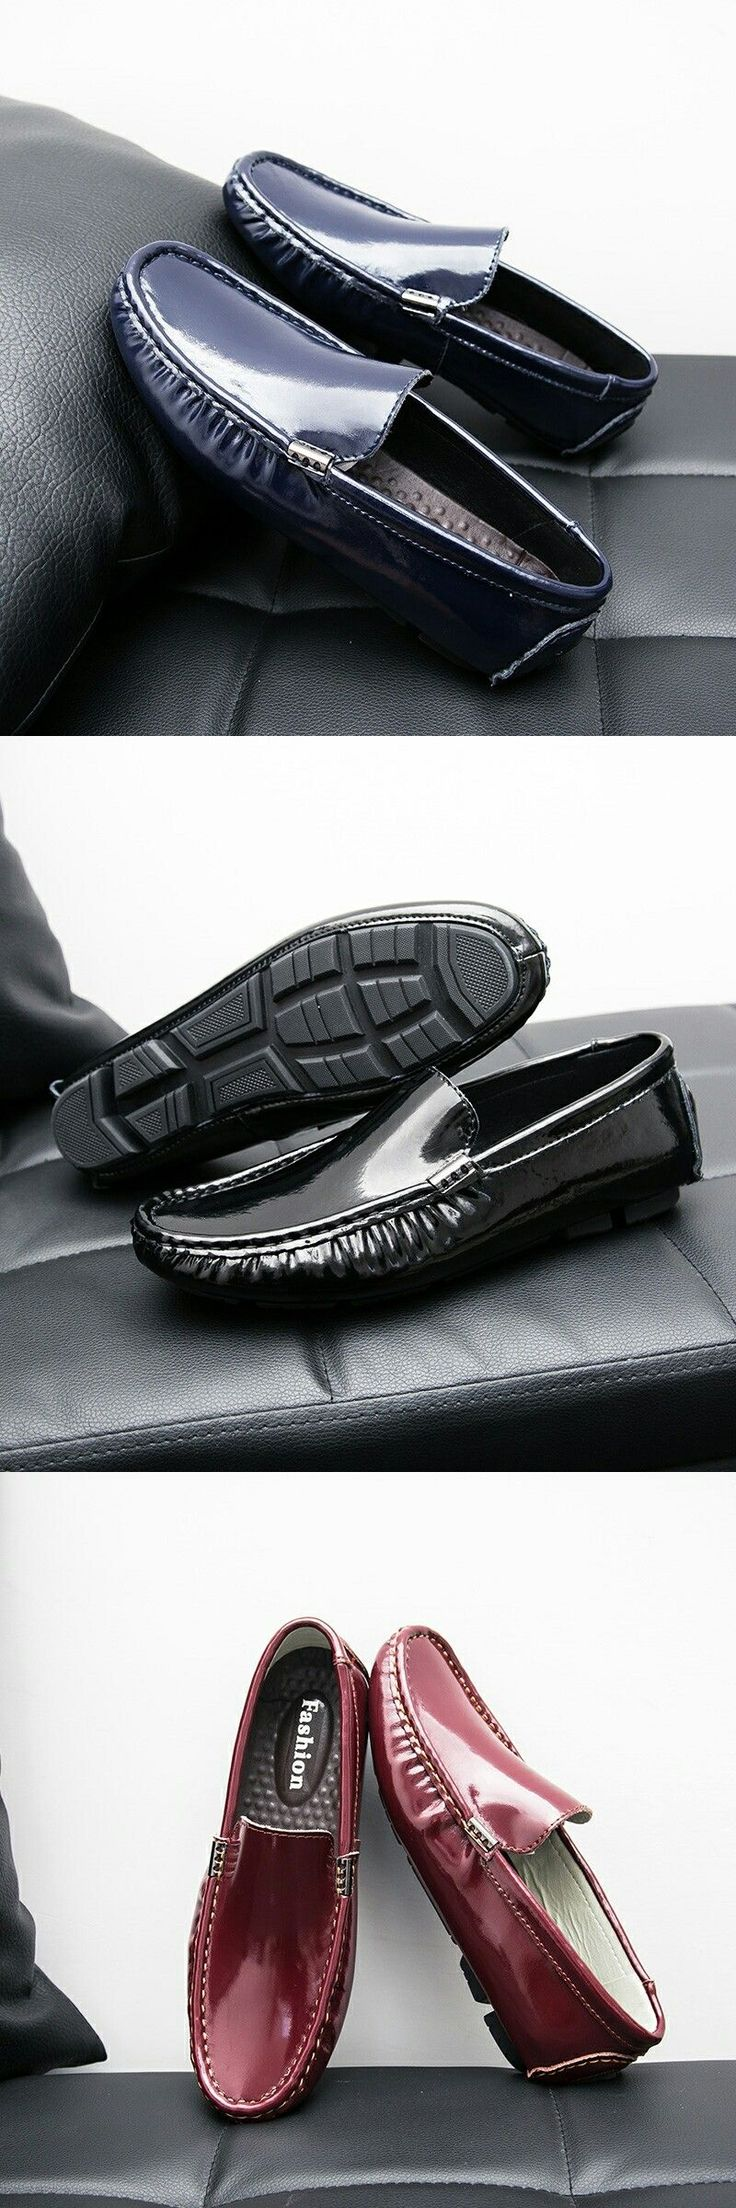 US $ Prelesty Simple Men's Shoes Loafers Patent Leather Casual Shoes Breathable Slip On… - http://sorihe.com/mensshoes/2018/02/24/us-prelesty-simple-mens-shoes-loafers-patent-leather-casual-shoes-breathable-slip-on-3/